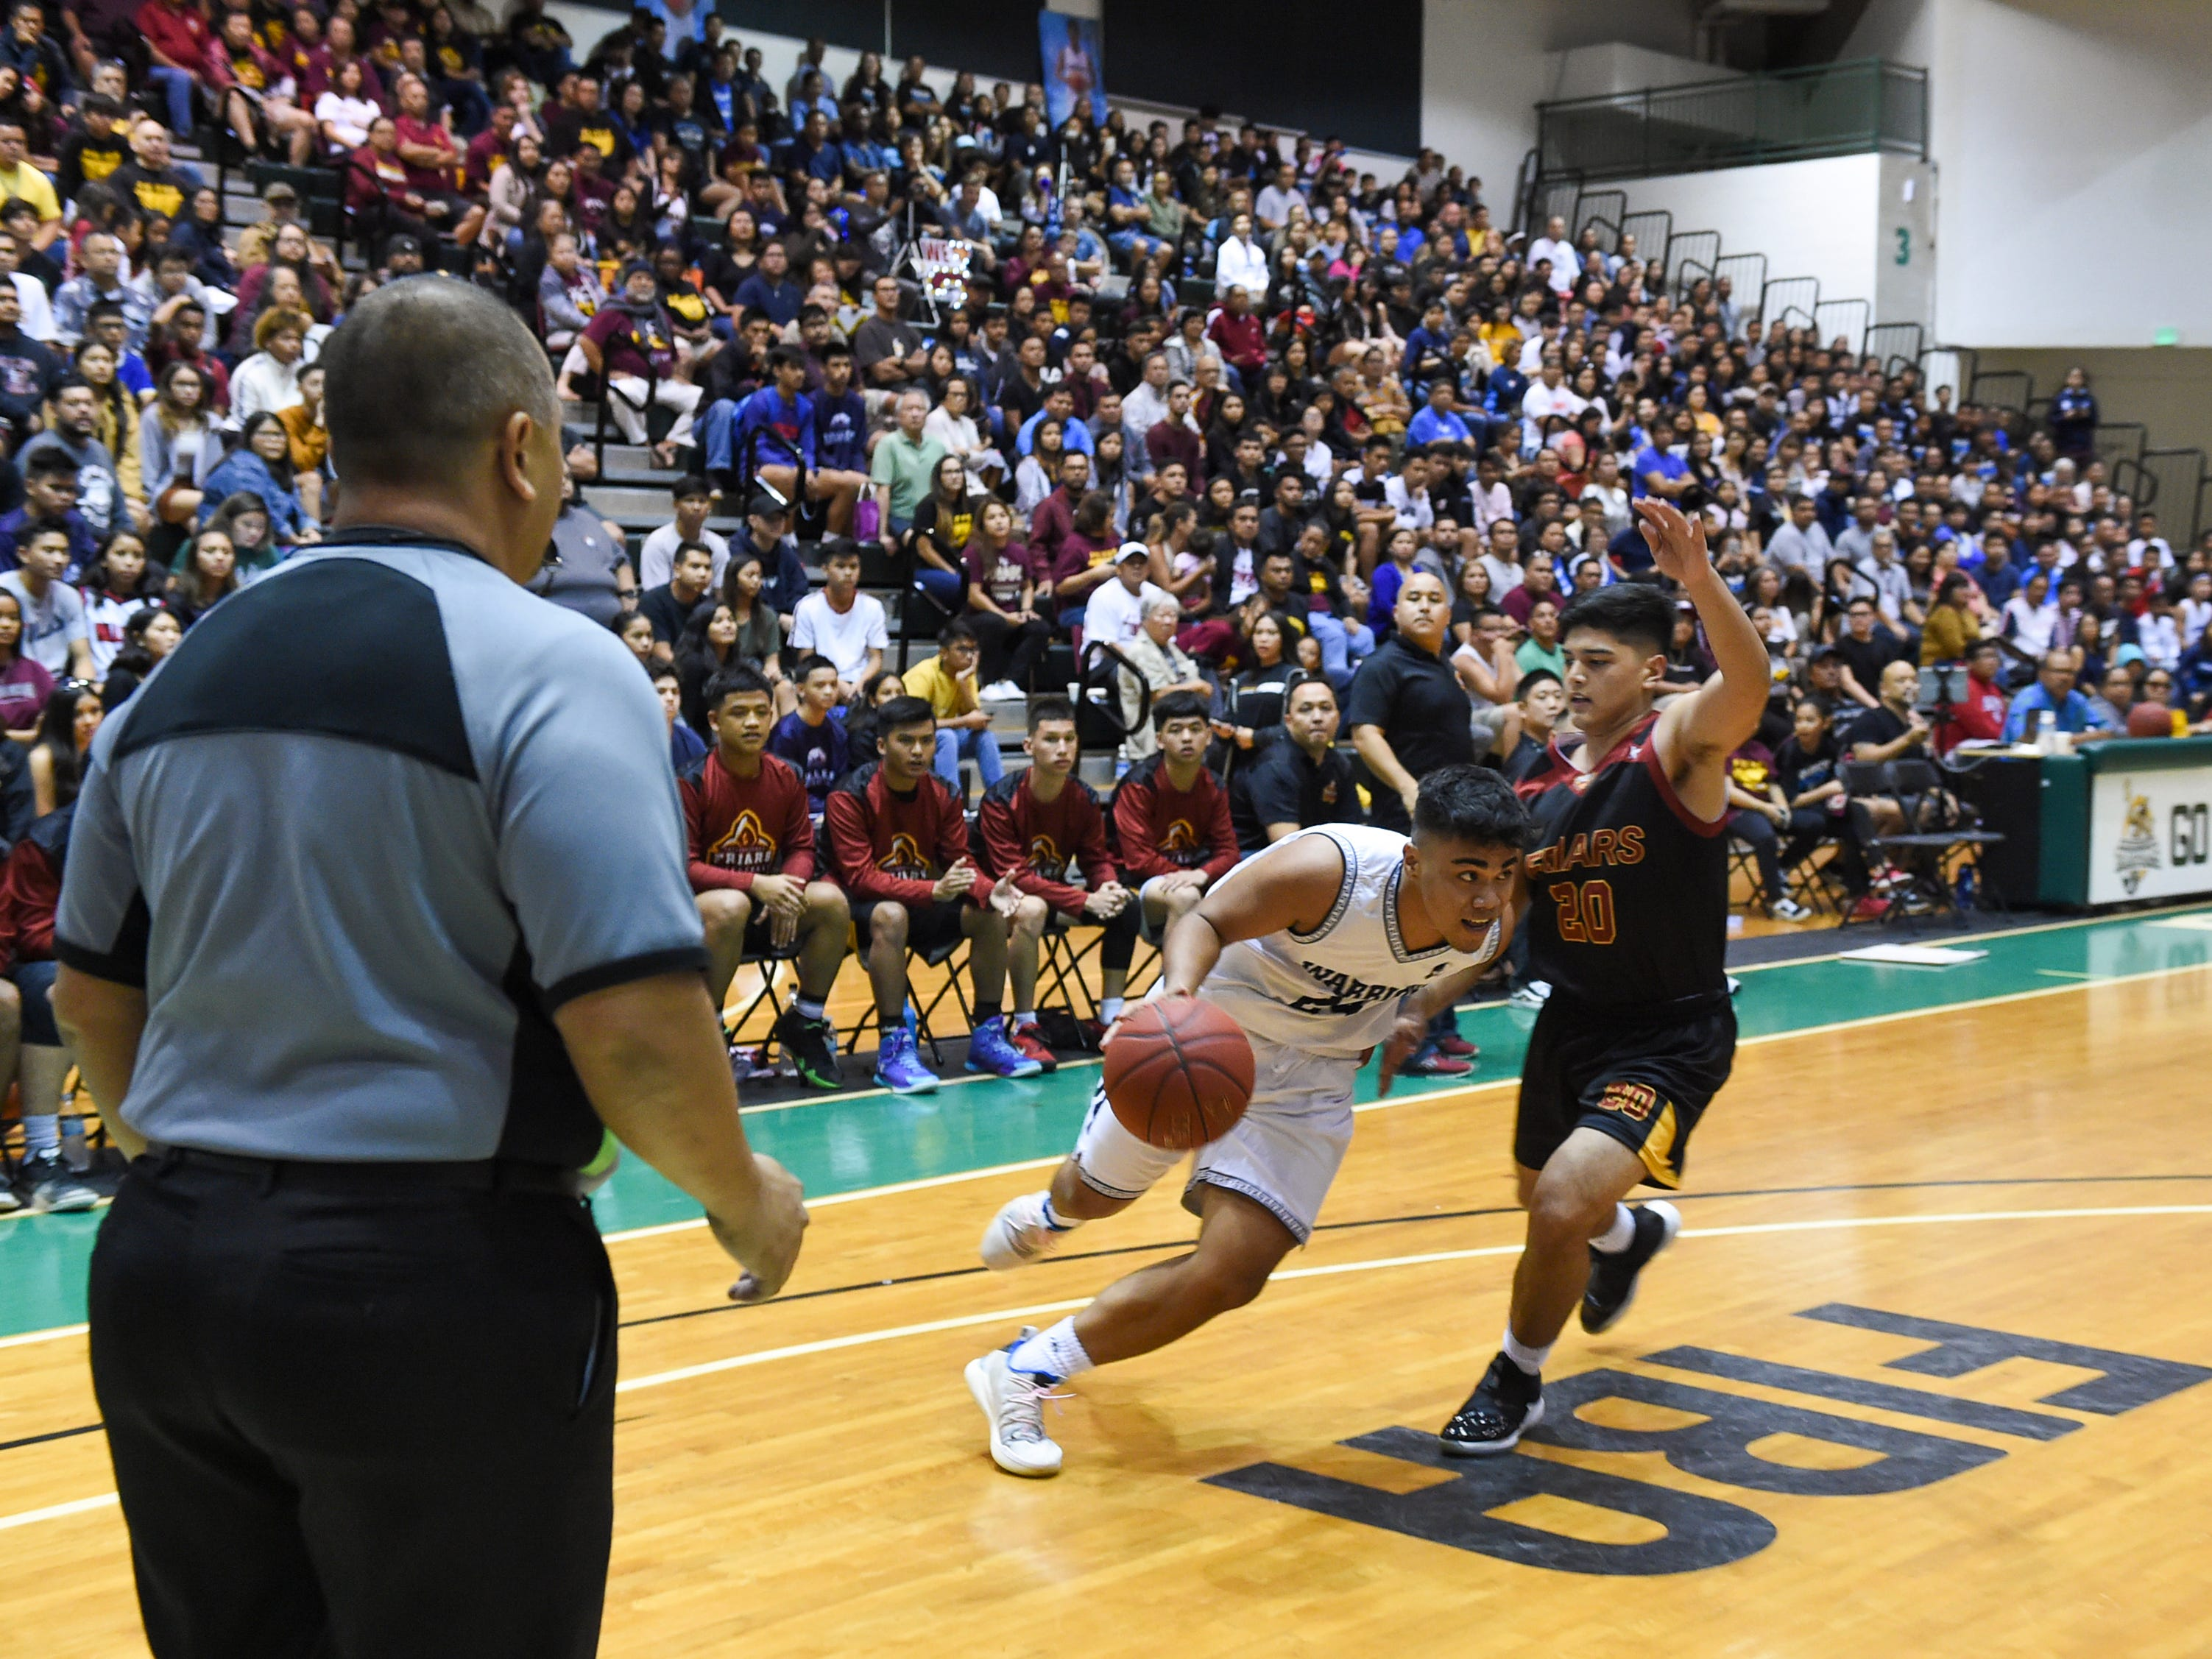 The St. Paul Warriors defeat the Father Duenas Friars 44-41 for the IIAAG Boys' Basketball Championship at the University of Guam Calvo Field House in Mangilao, March 15, 2019.